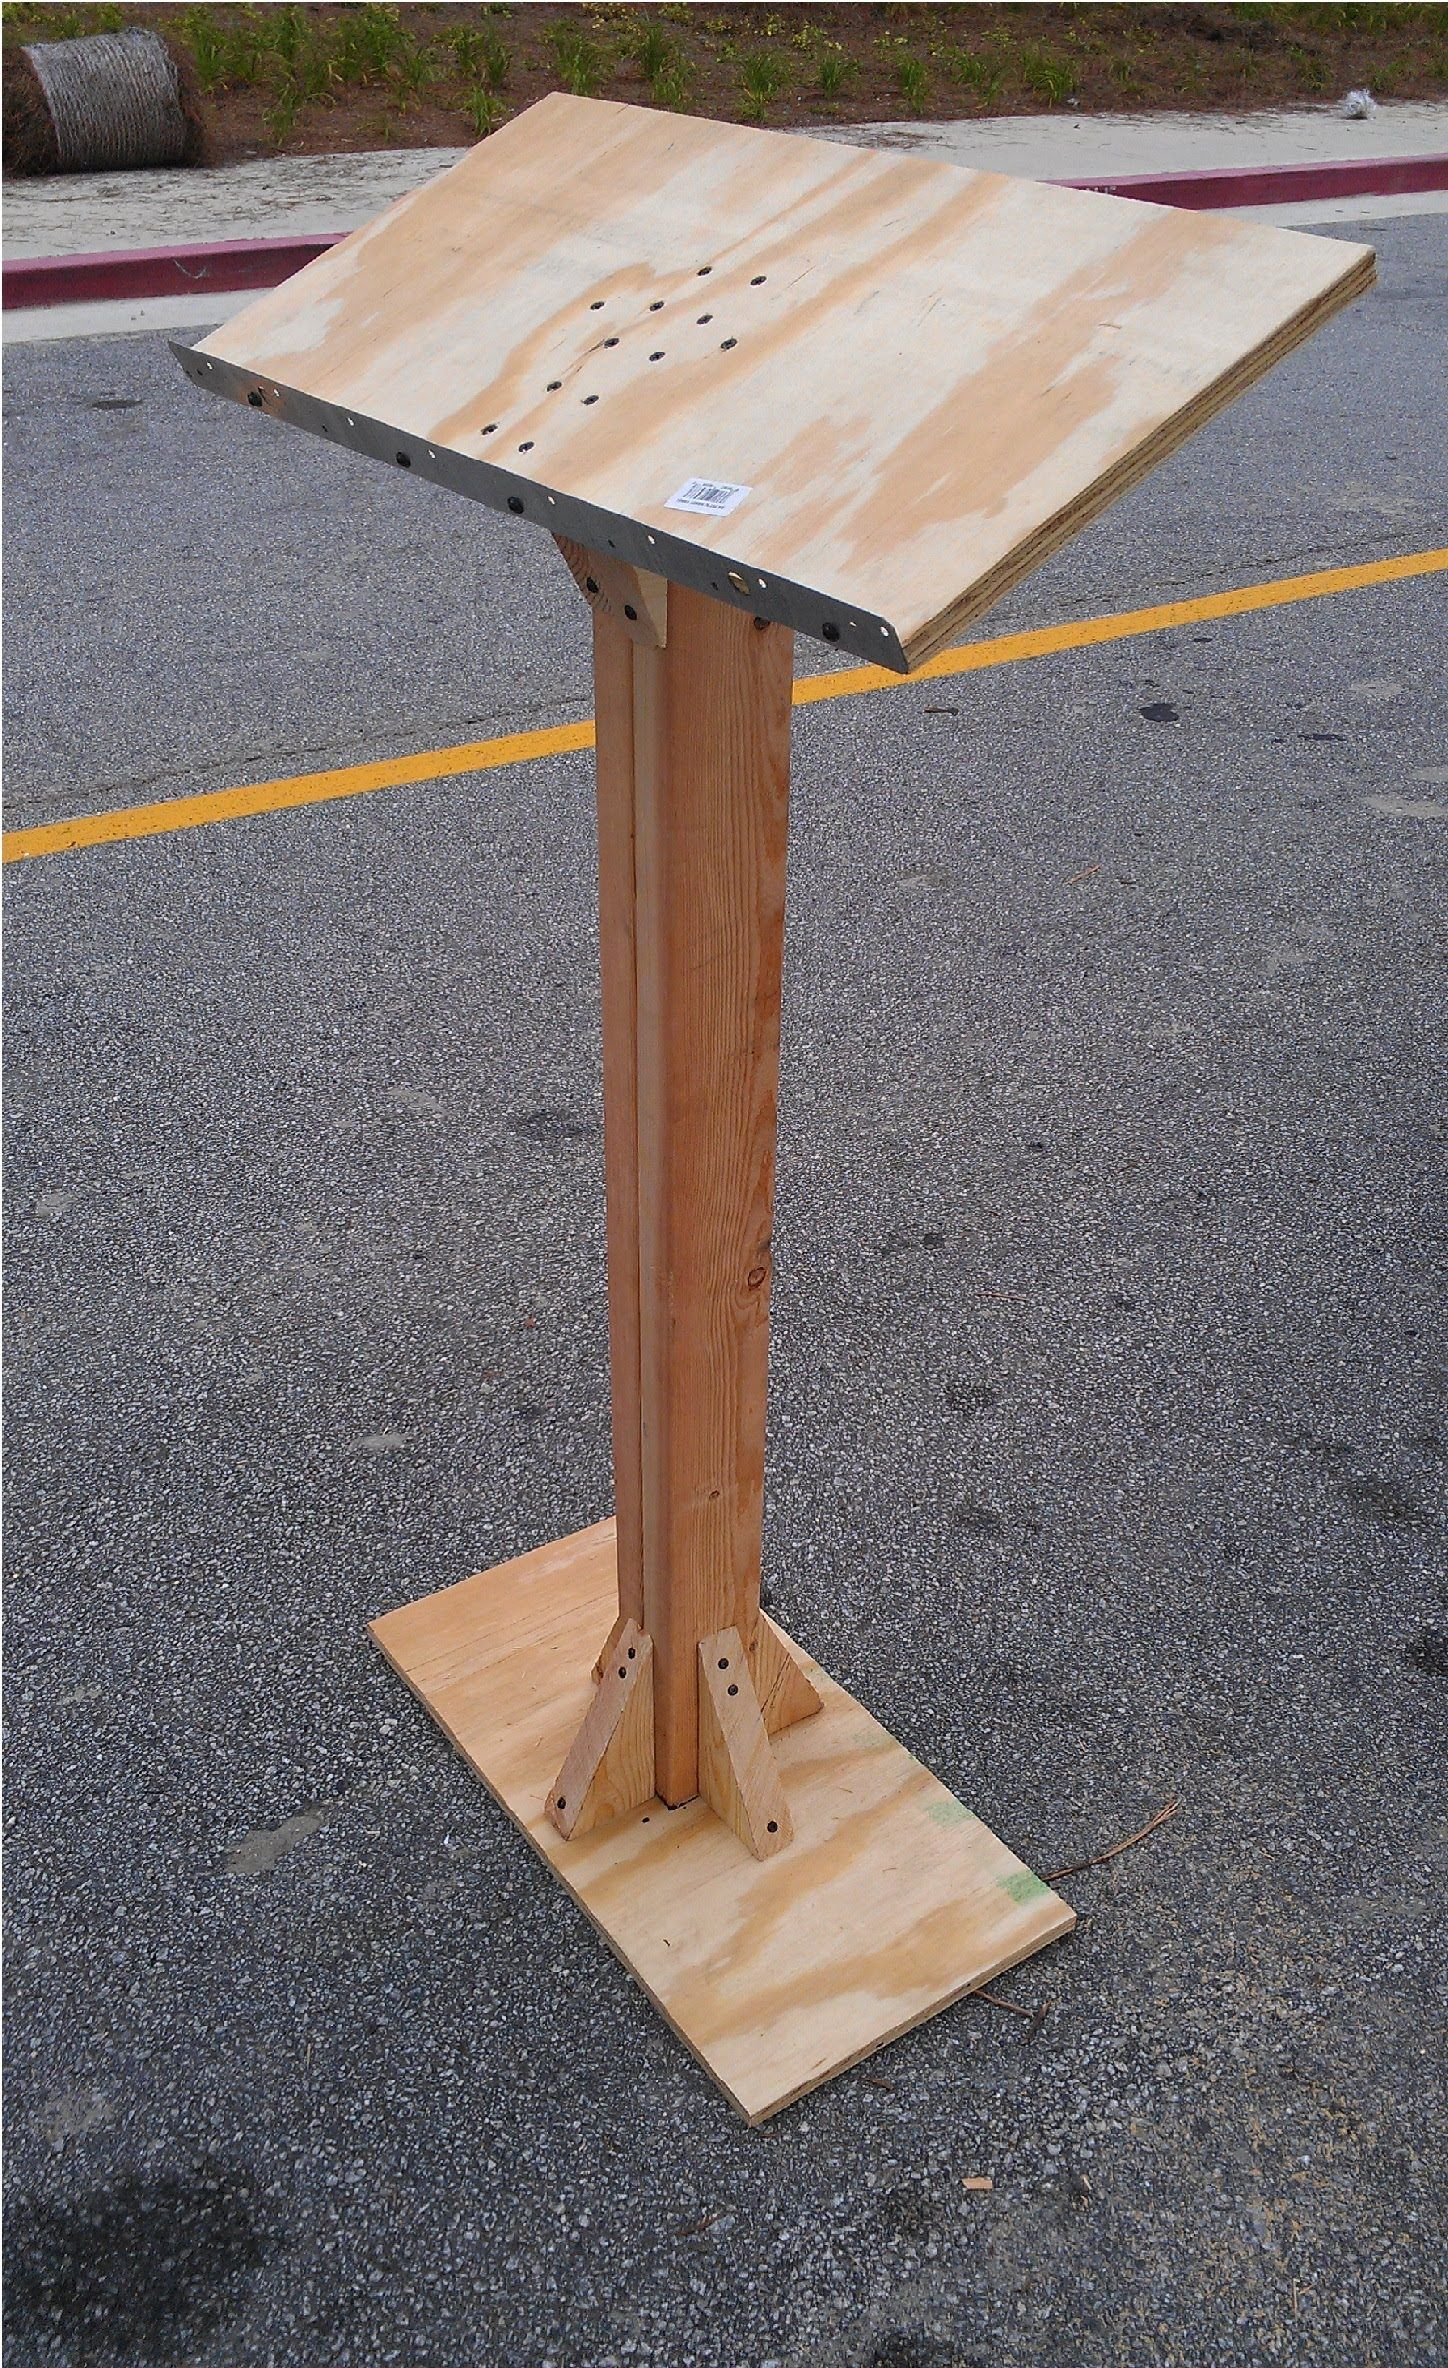 Make A Podium For Class Podium Woodworking Plans Wood Shop Projects Lectern Woodworking Plans